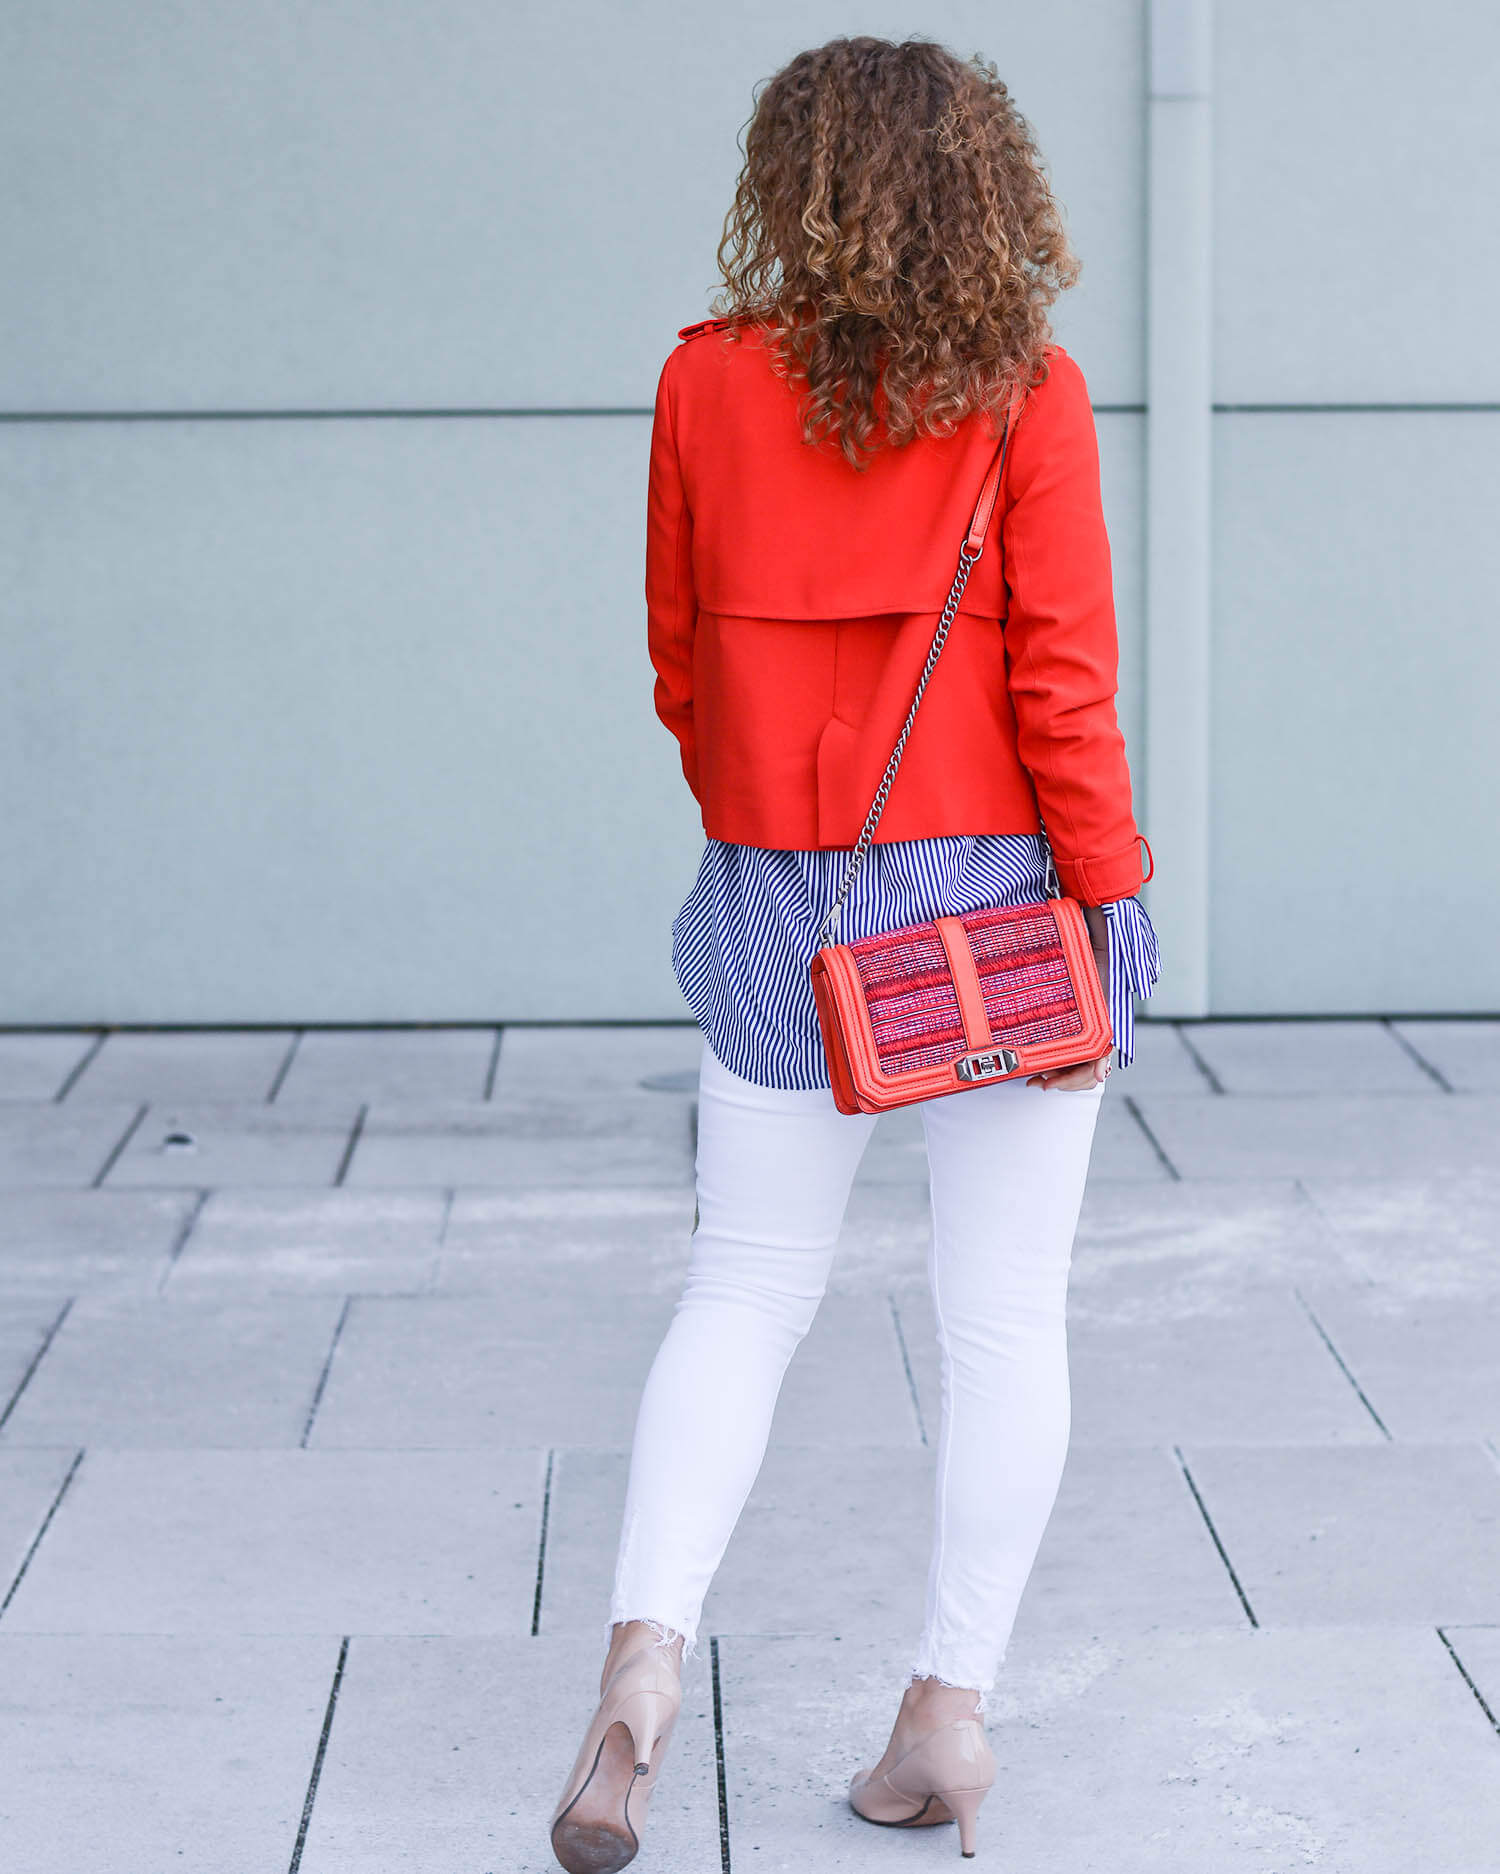 Outfit-Spring-Fashion-with-White-Denim-Blue-and-Red-Zara-Jacket-kationette-fashionblogger